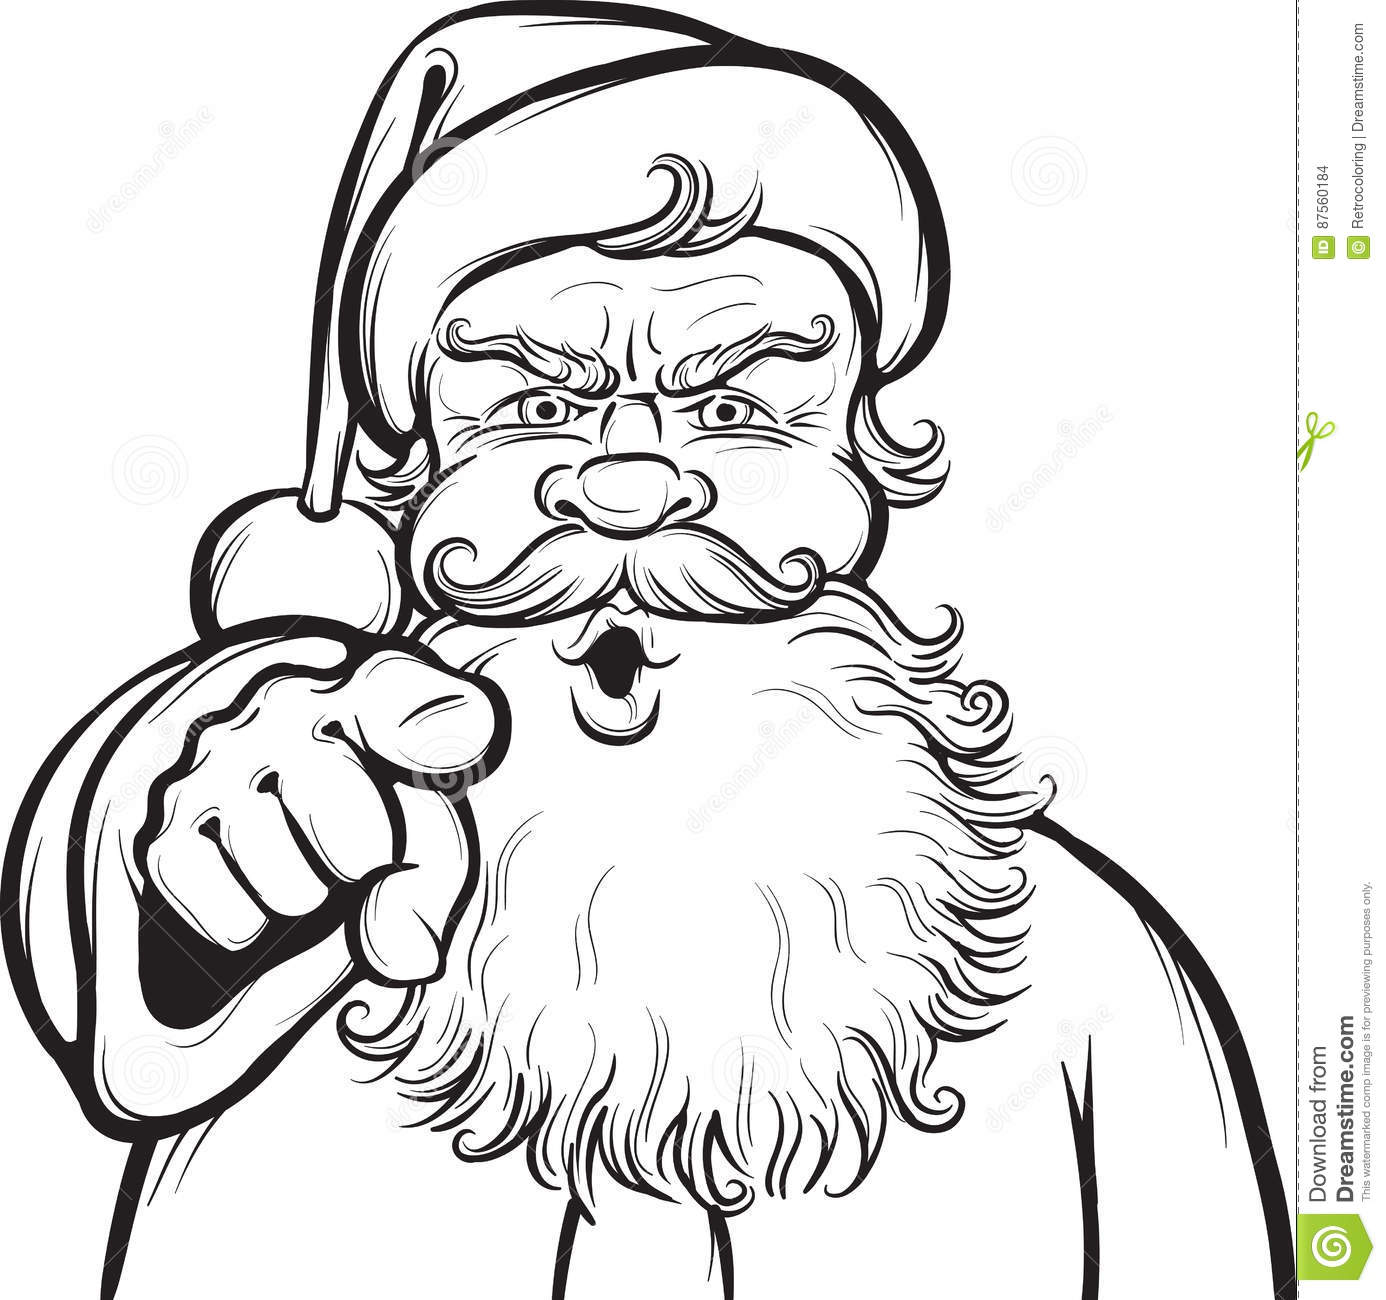 Christmas Coloring Page With Santa Stock Vector - Illustration of ...